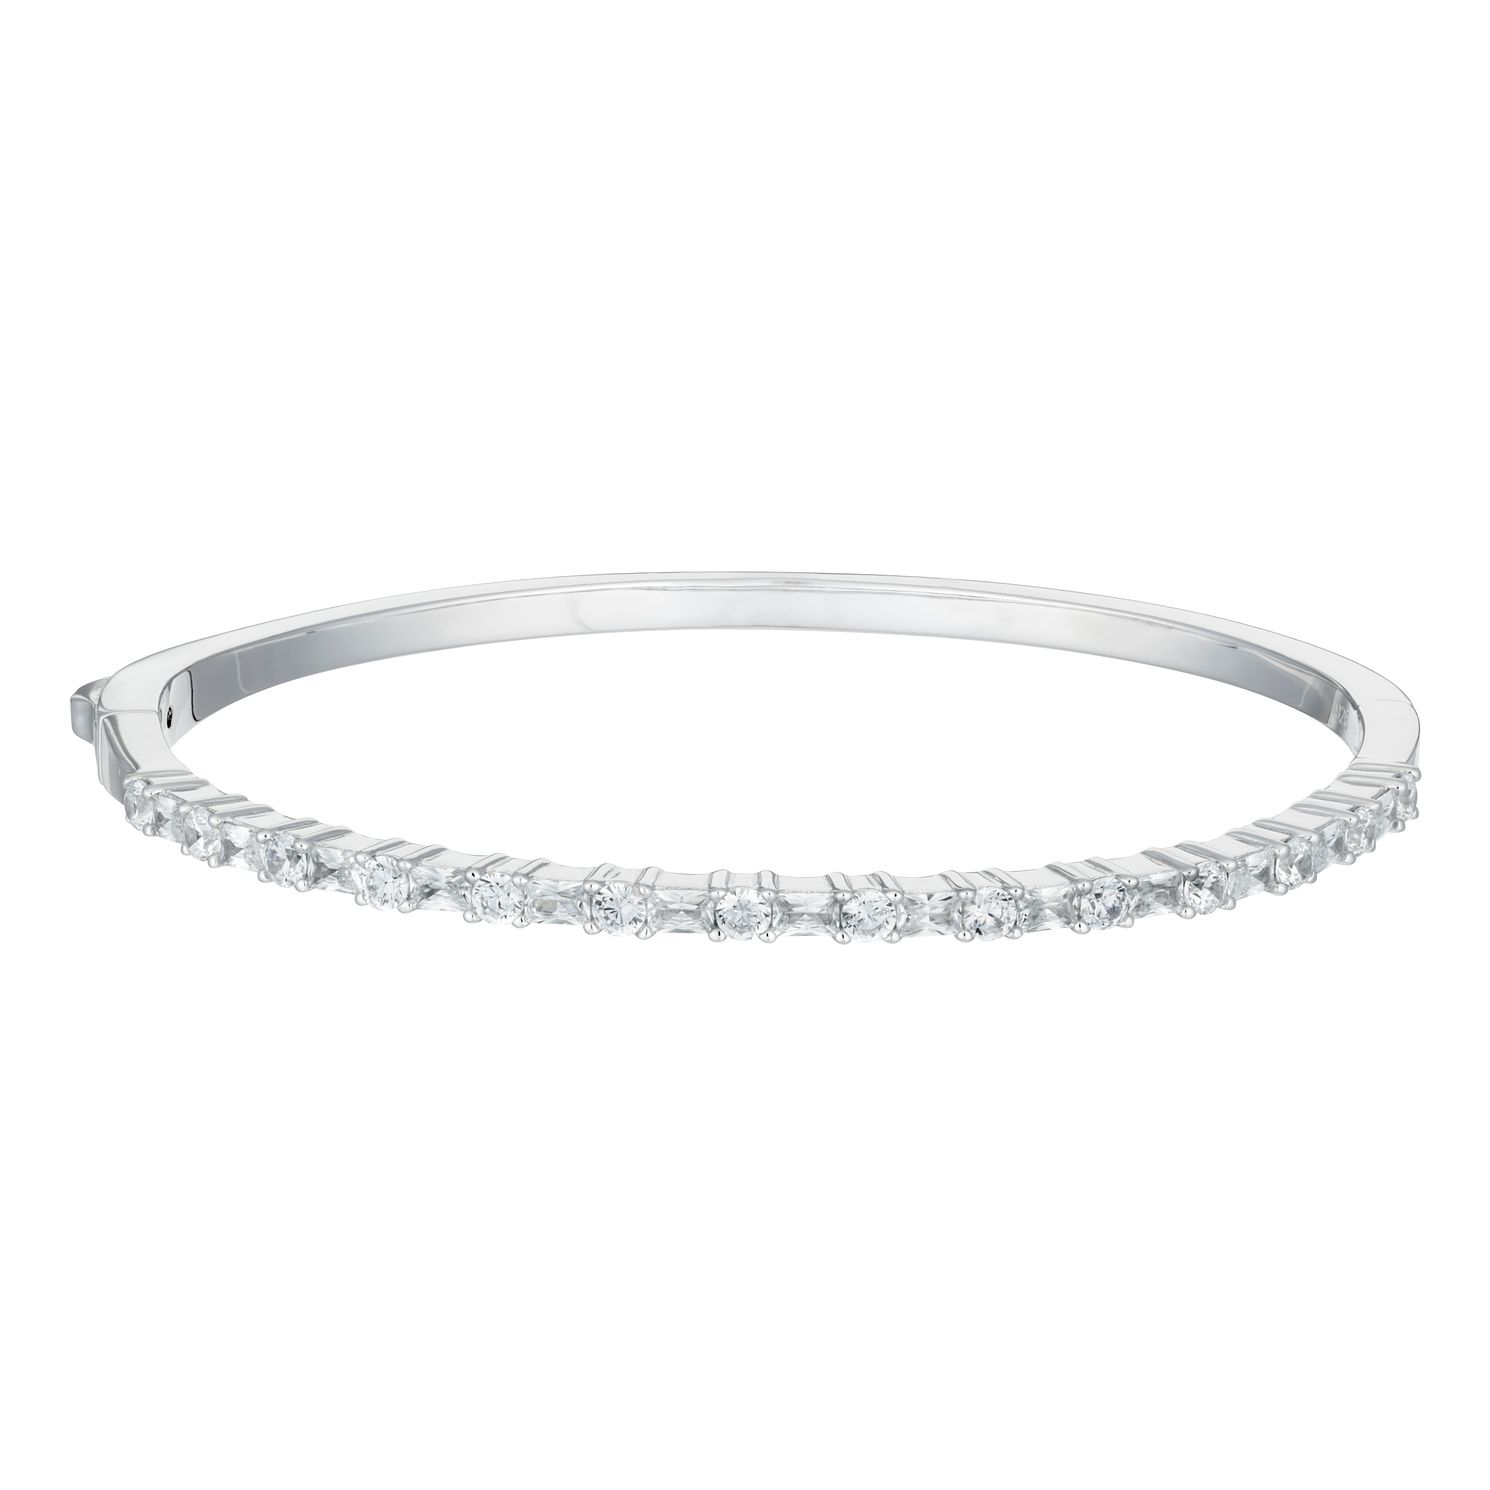 Ladies' Silver & Cubic Zirconia Half Eternity Bangle - Product number 9540725